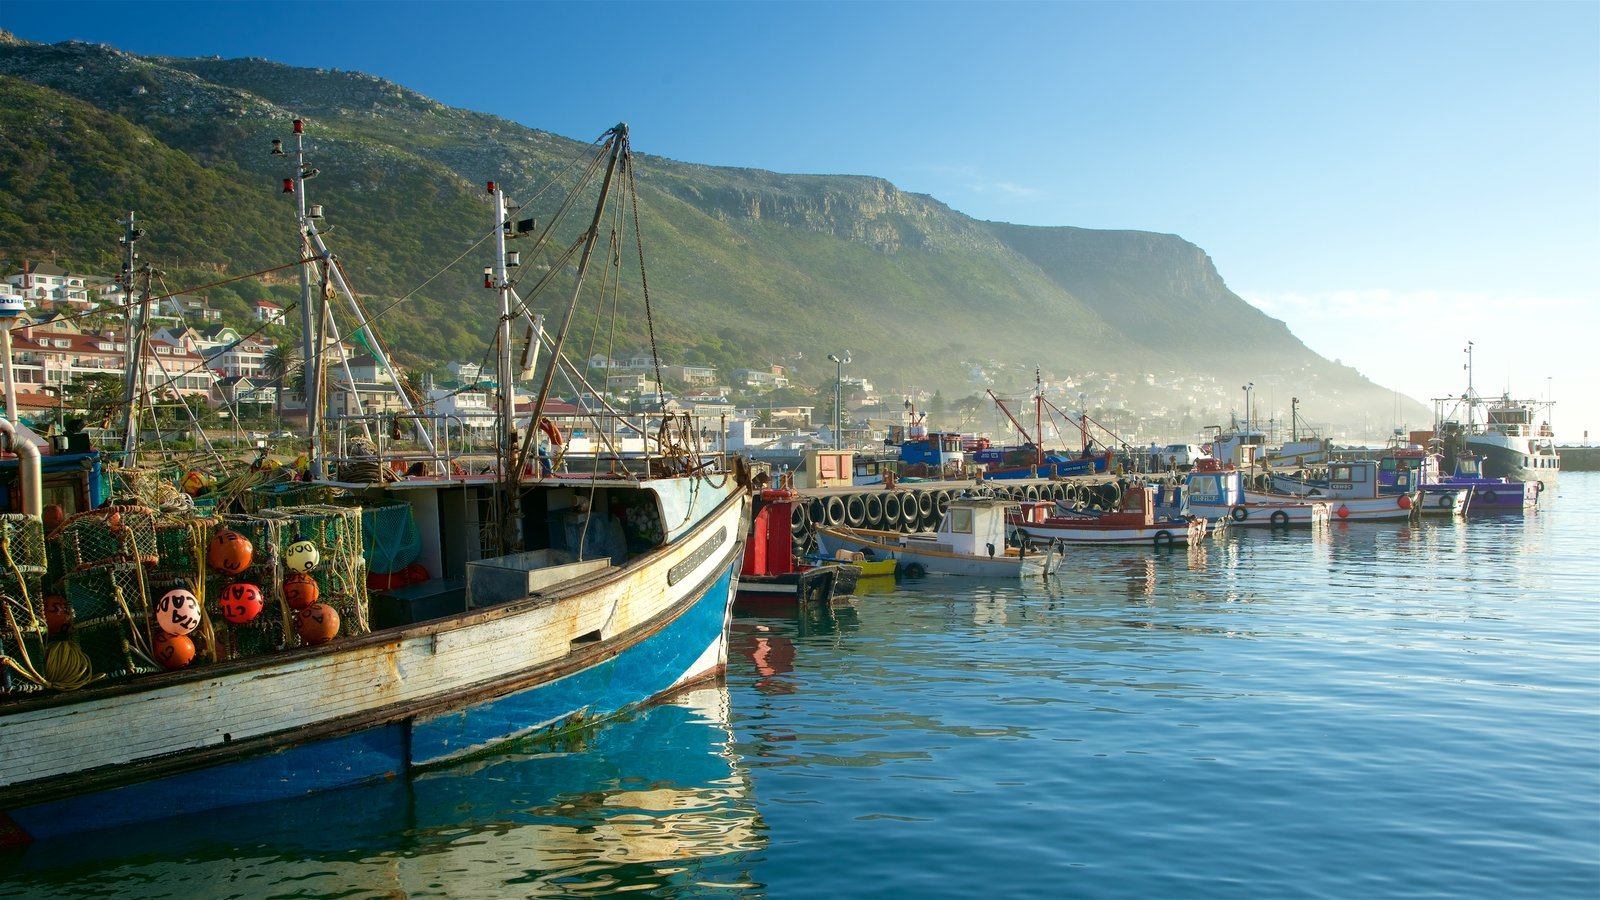 Kalk Bay which includes a bay or harbour, a coastal town and boating